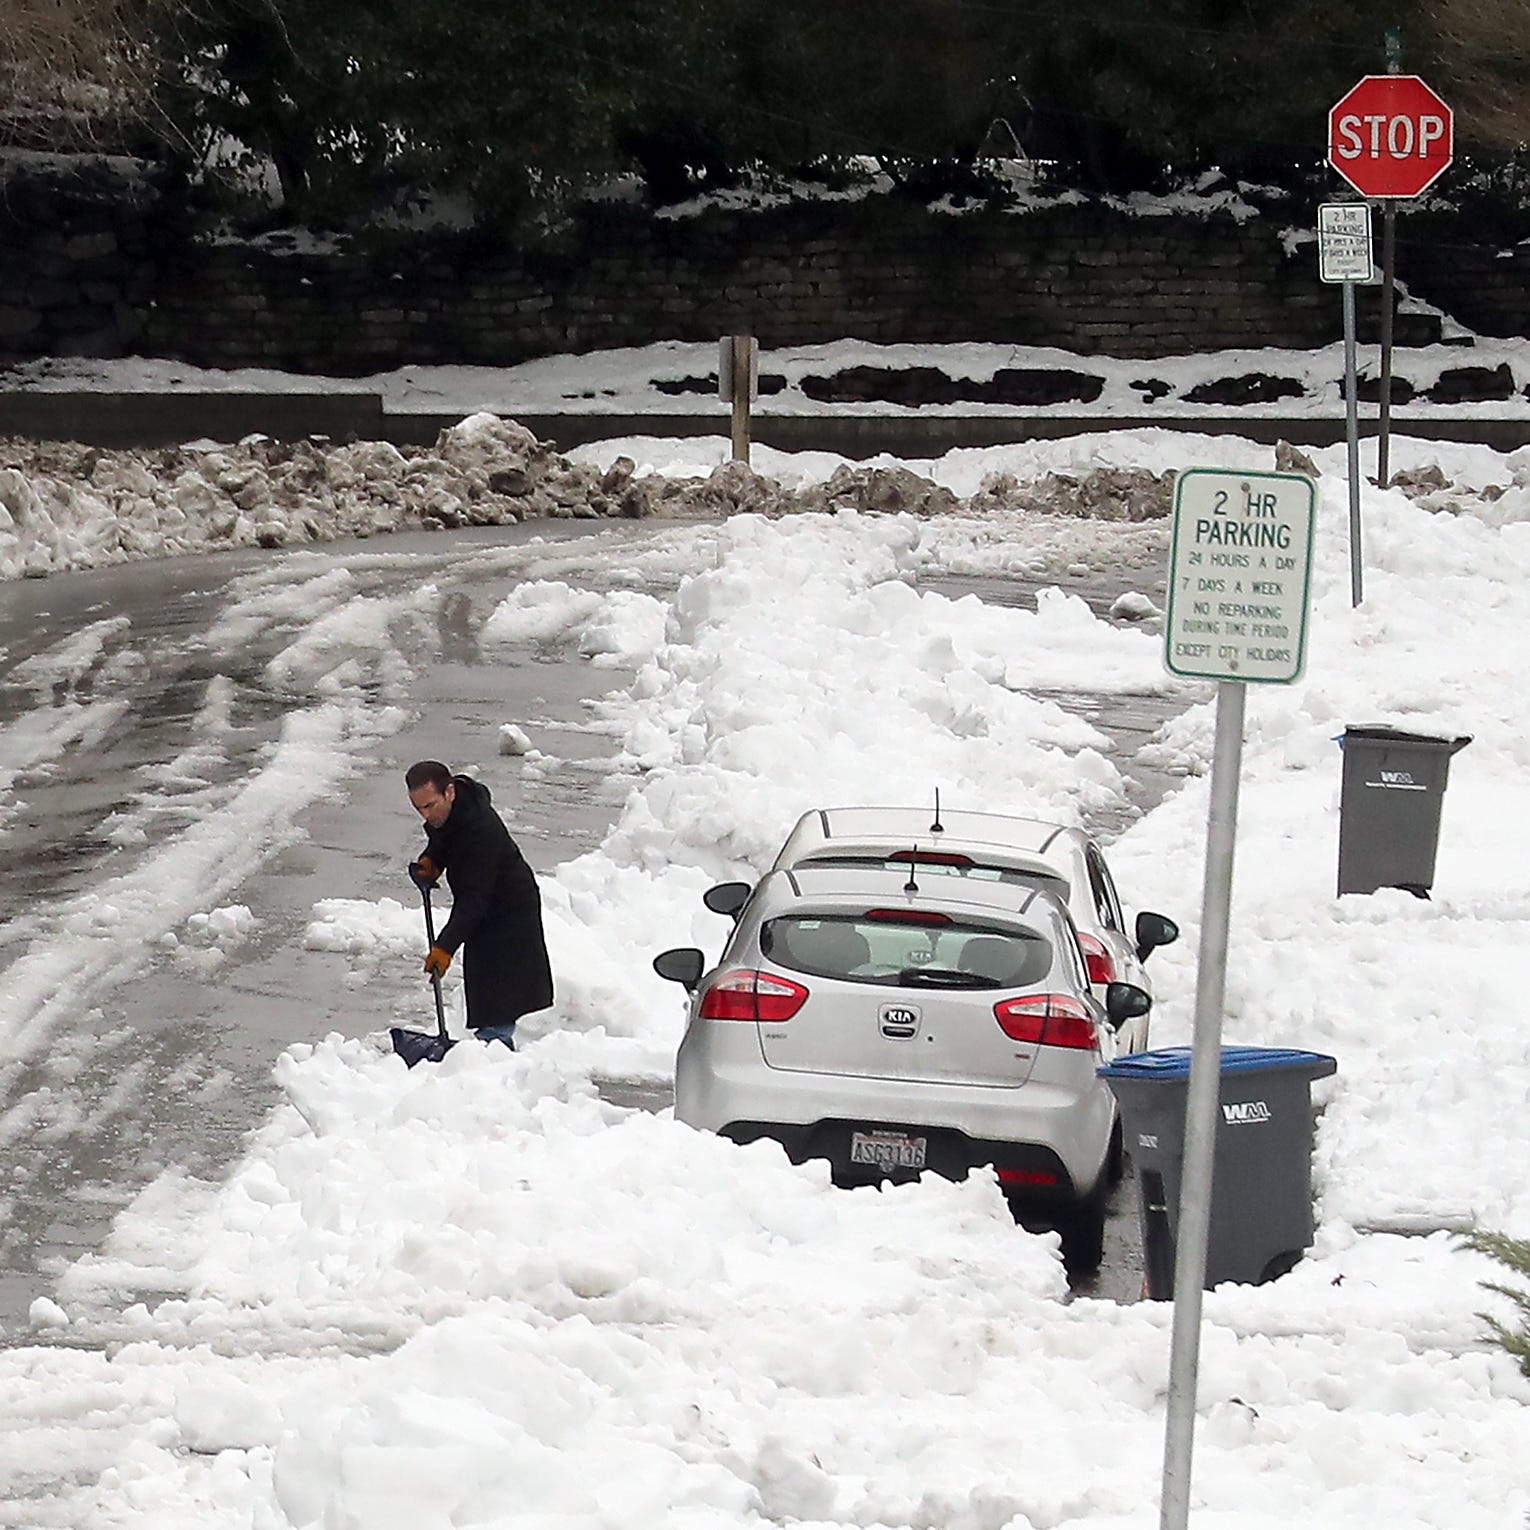 As plows clear public roads, those on private roads may feel trapped